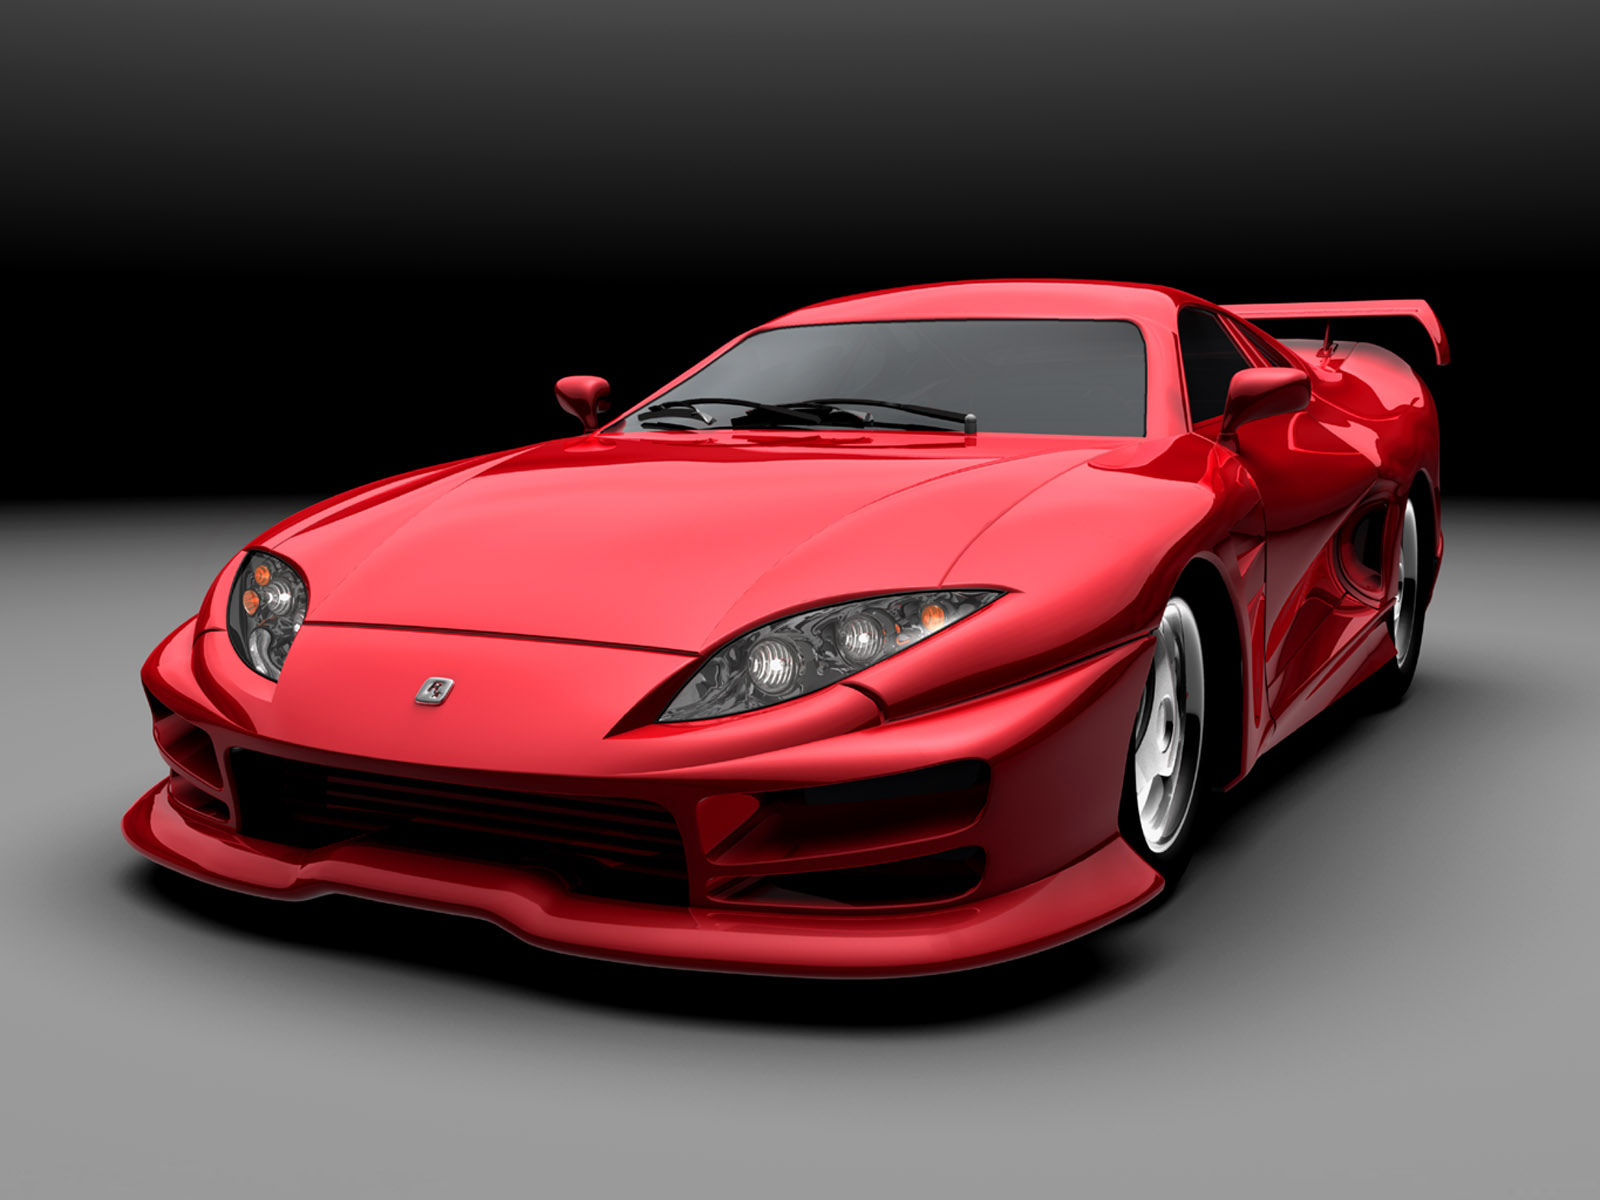 red sports car angle wallpapers 12040 1600x1200 Hd Exotic Car Wallpapers